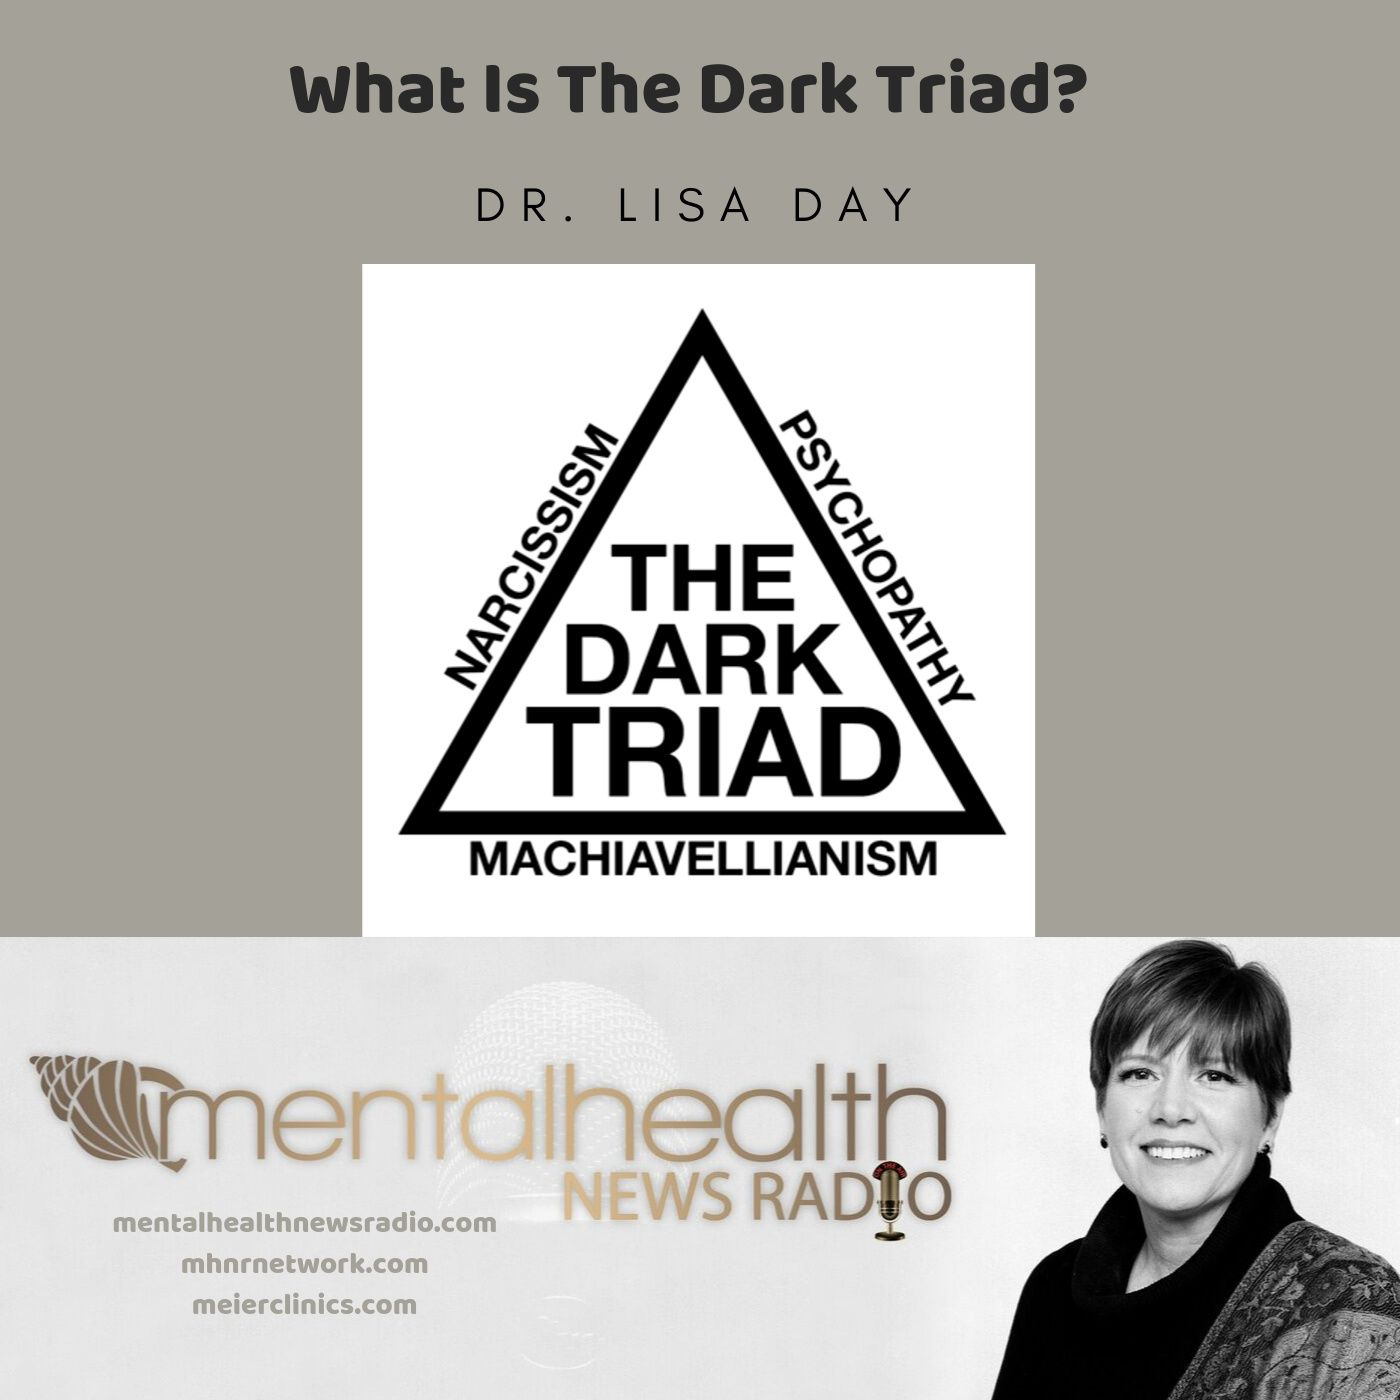 Mental Health News Radio - What is the Dark Triad with Dr. Lisa Day